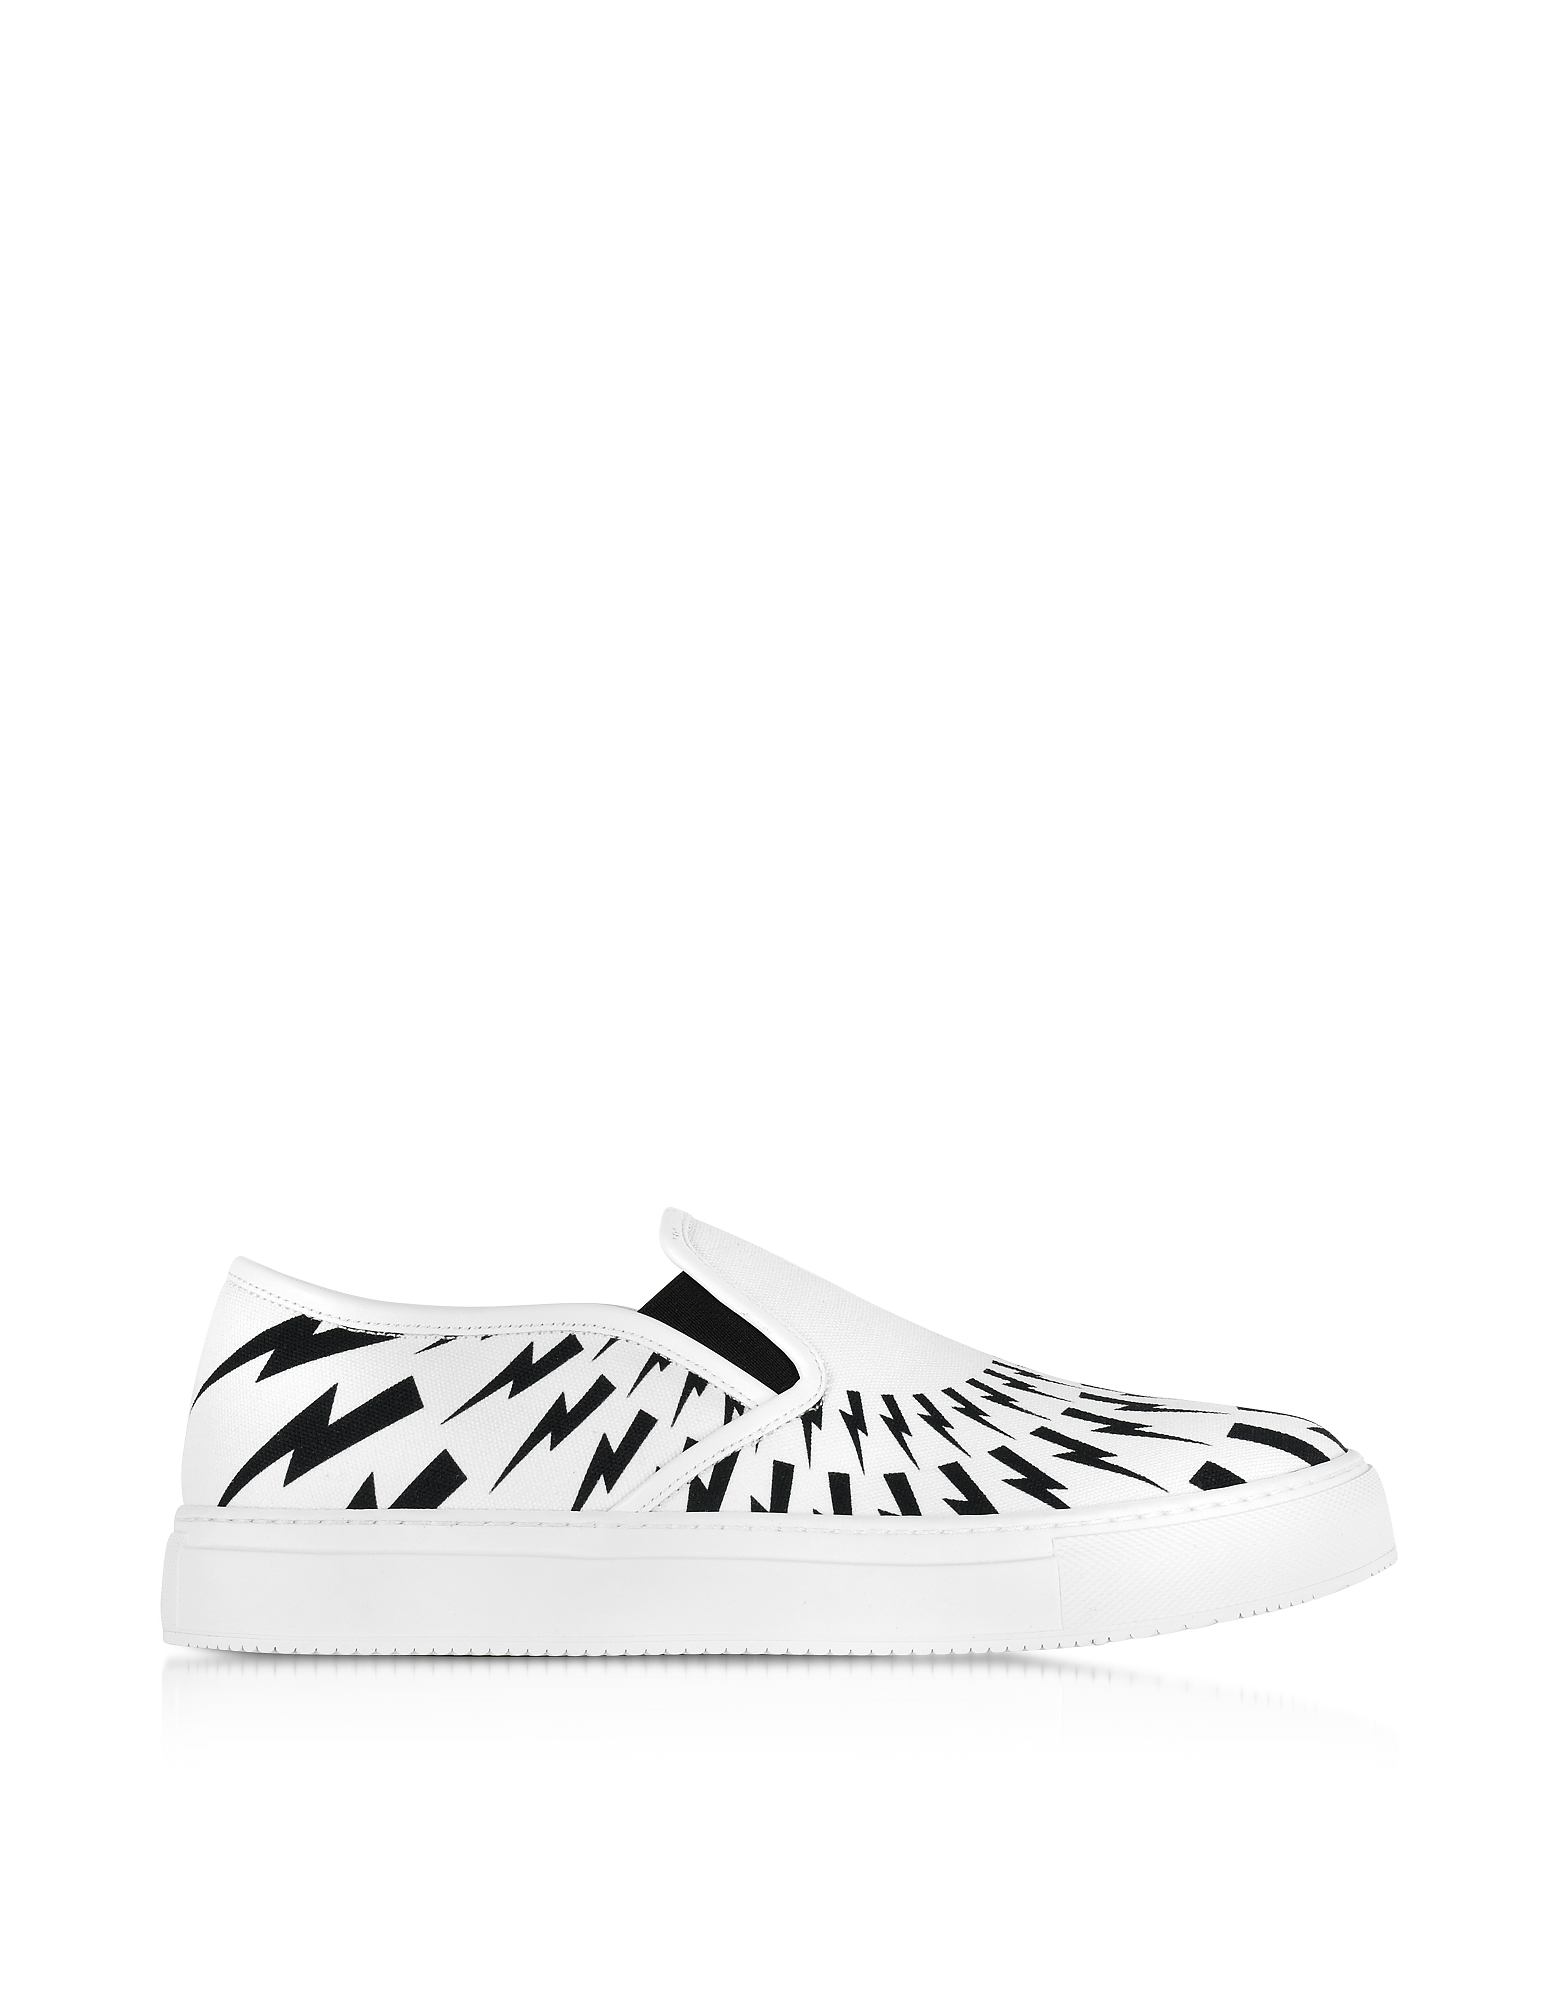 Neil Barrett Shoes, White and Black Optic Printed Canvas Slip on Trainer